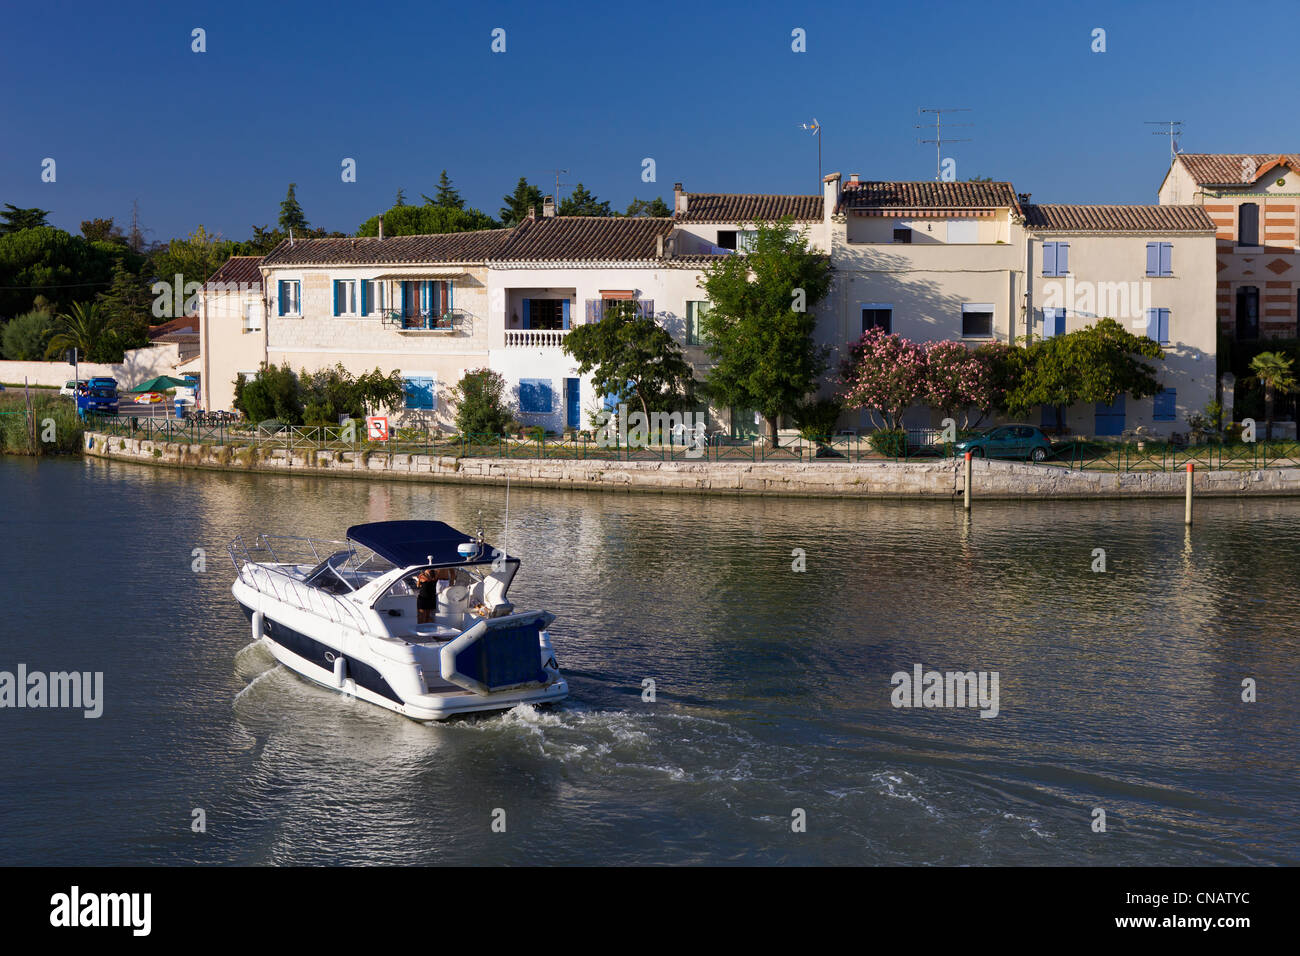 France, Gard, Aigues Mortes, the maritime channel of the Mer of Aigues Mortes - Stock Image